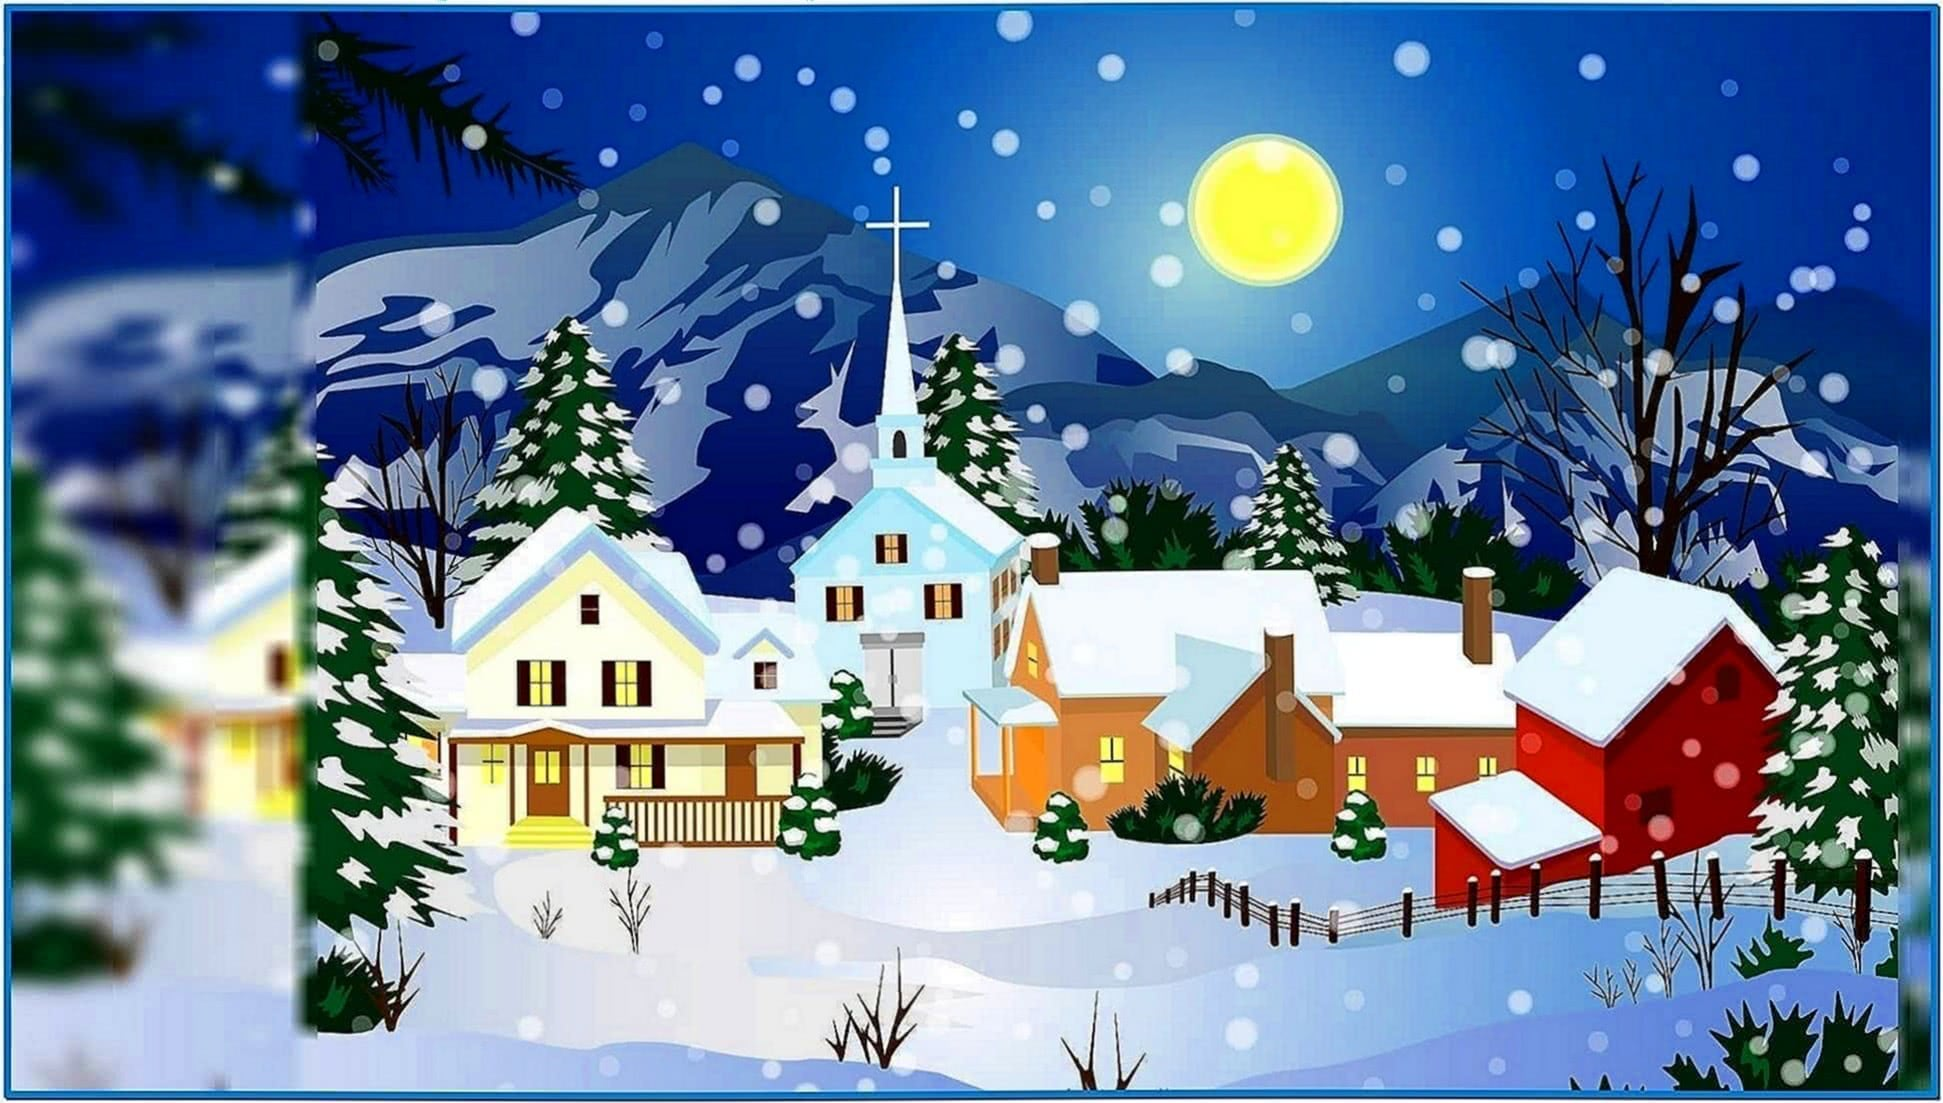 Animated Holiday Screensaver